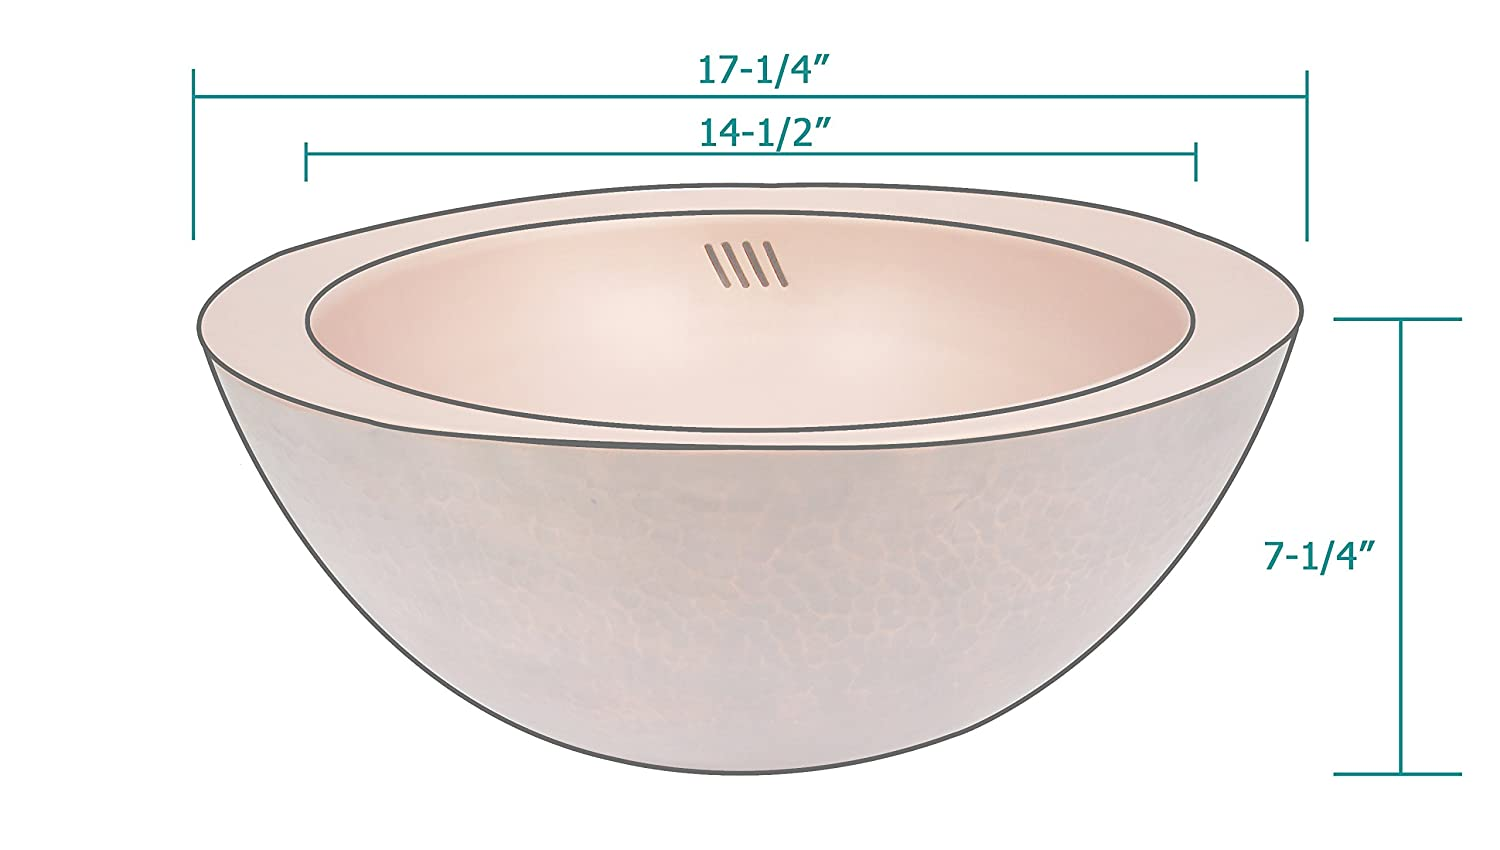 Sinda Industry V4 Copper Bathroom Sink with Overflow Handmade by Sinda Copper Round 17.25x7.25 Pop-up Stopper Included Vessel Mount Antique Copper